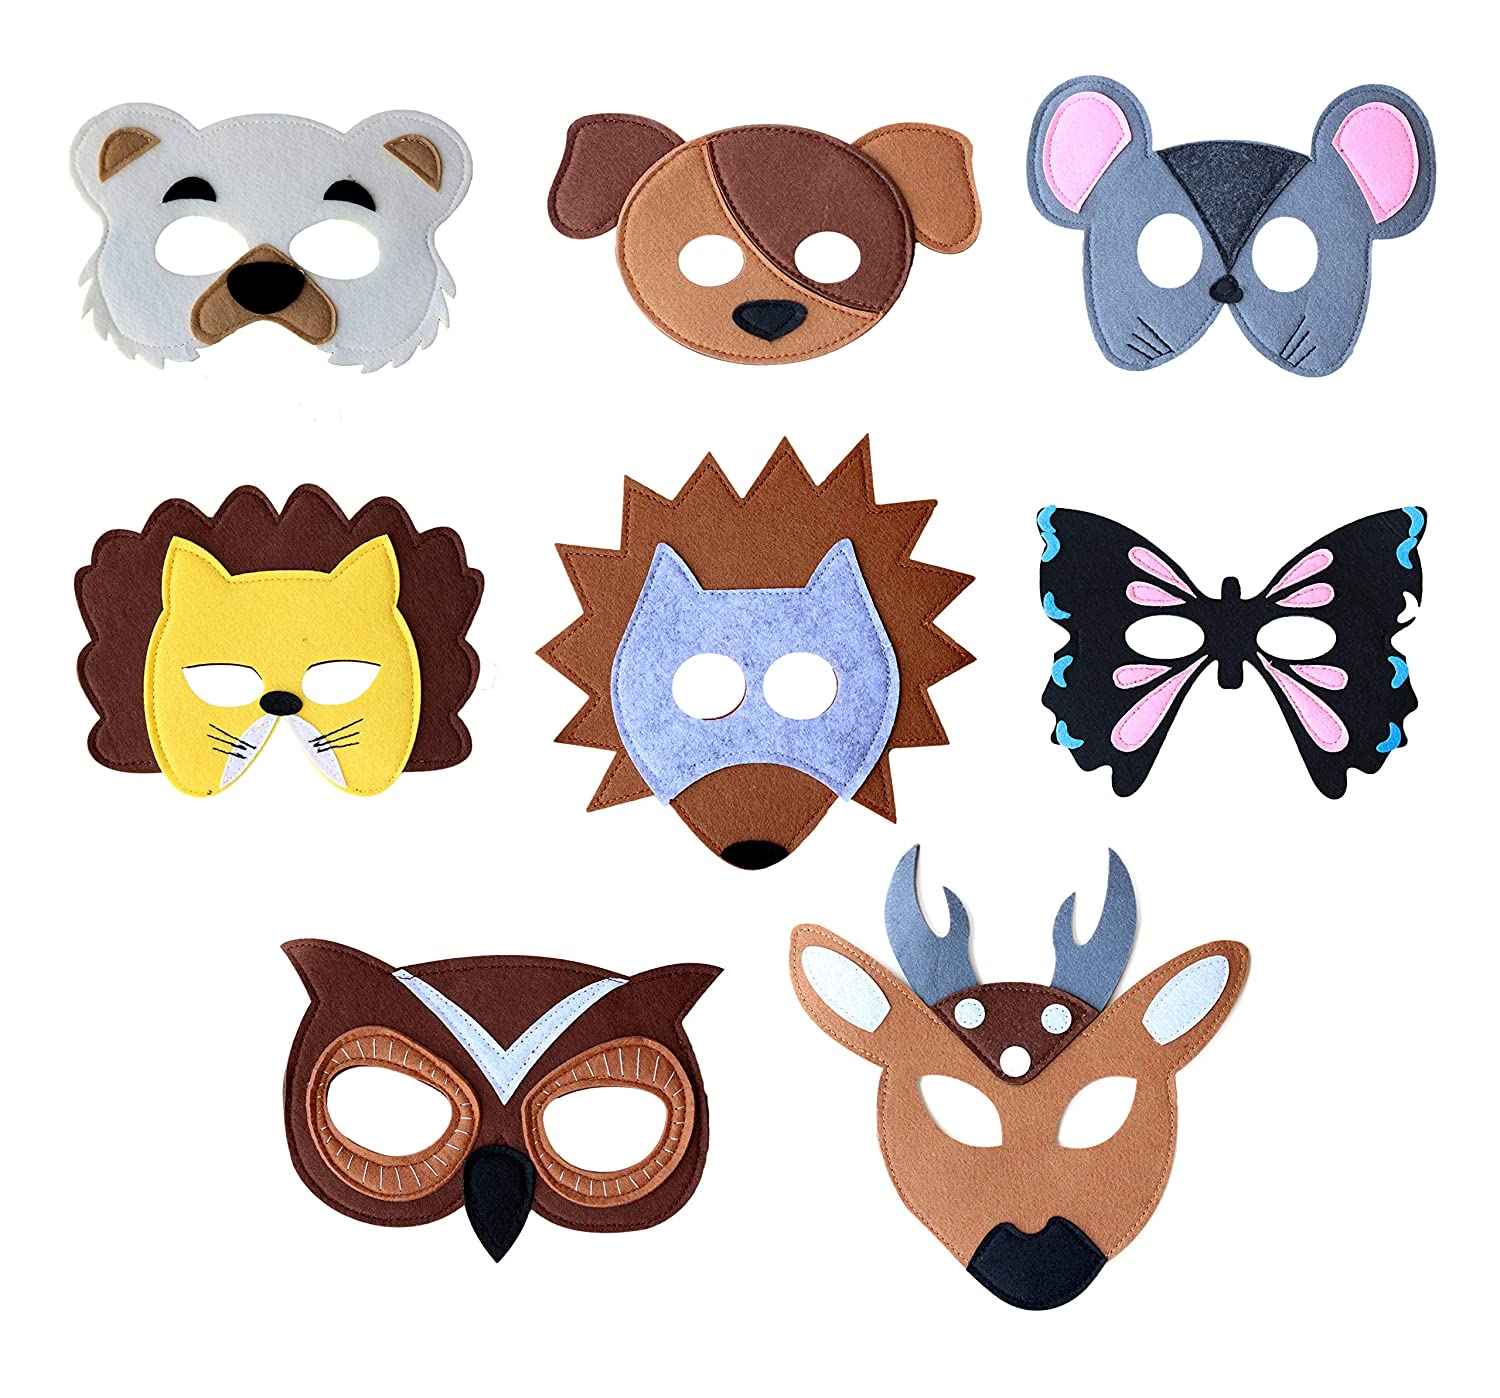 Set of 8 Felt Animal Masks for Pretend Play Dress up Parties